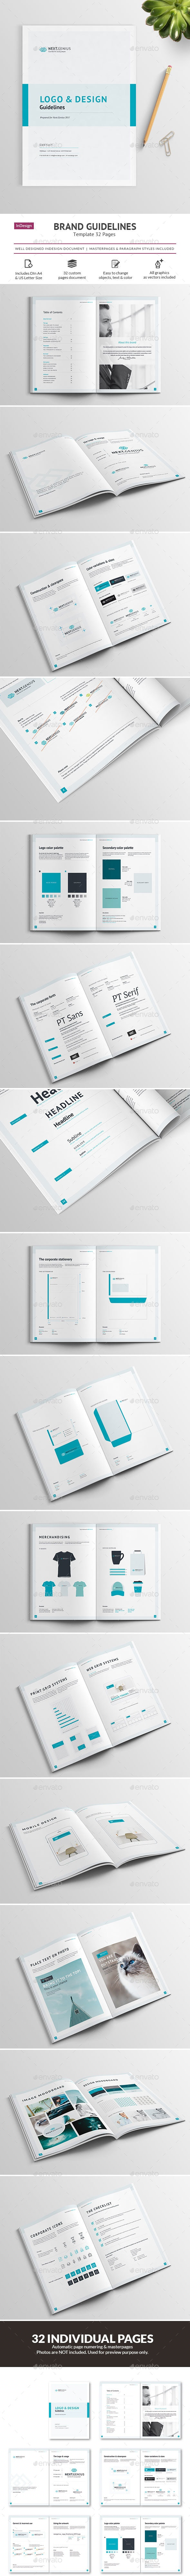 Brand Guidelines - 32 pages - Informational Brochures